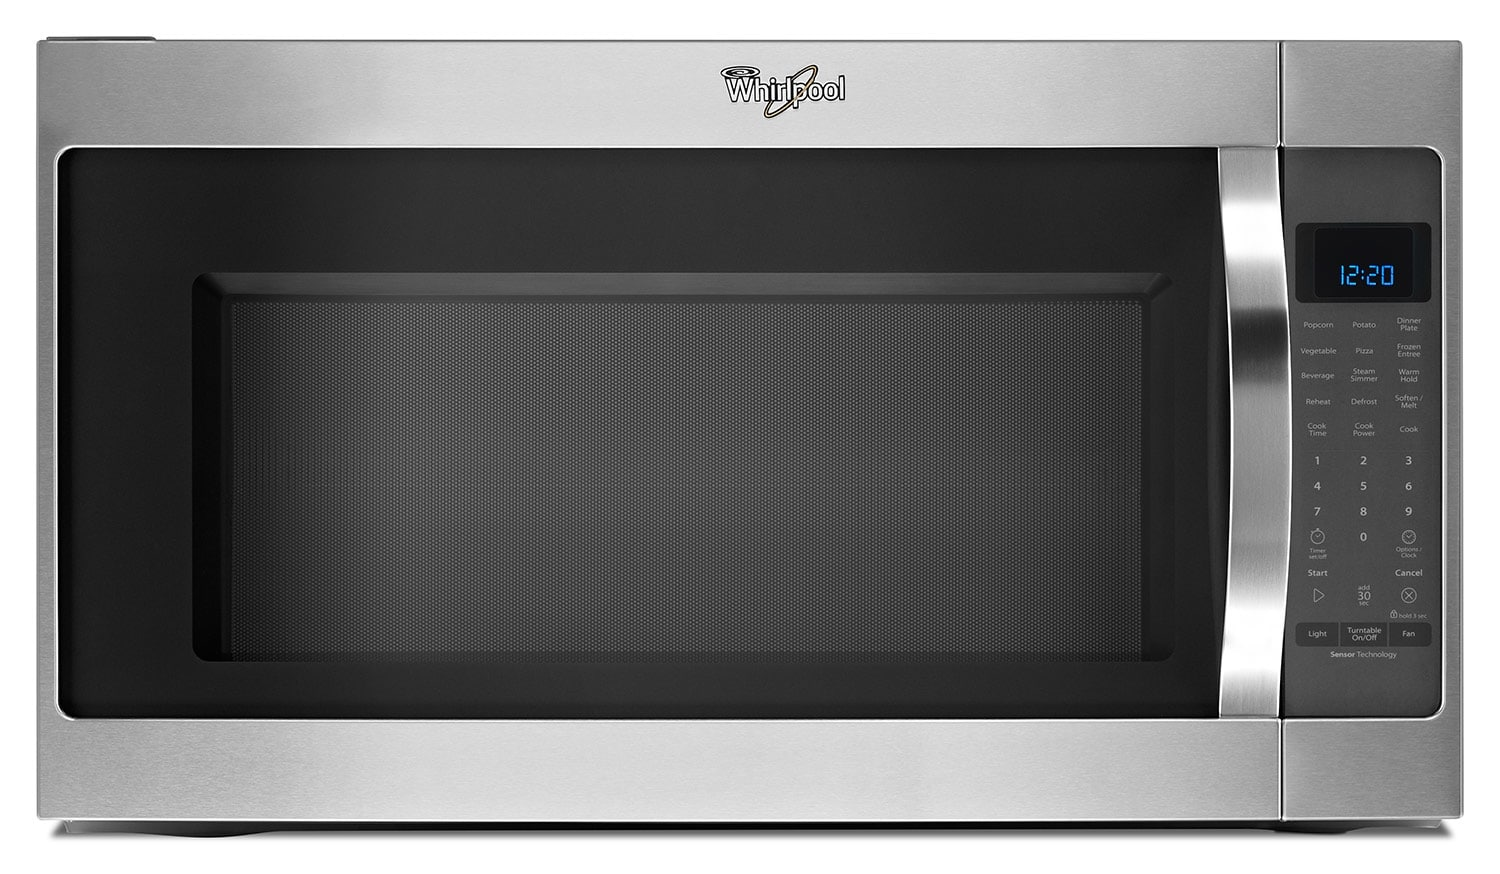 Cooking Products - Whirlpool Stainless Steel Over-the-Range Microwave (2 Cu. Ft.) - YWMH53520CS